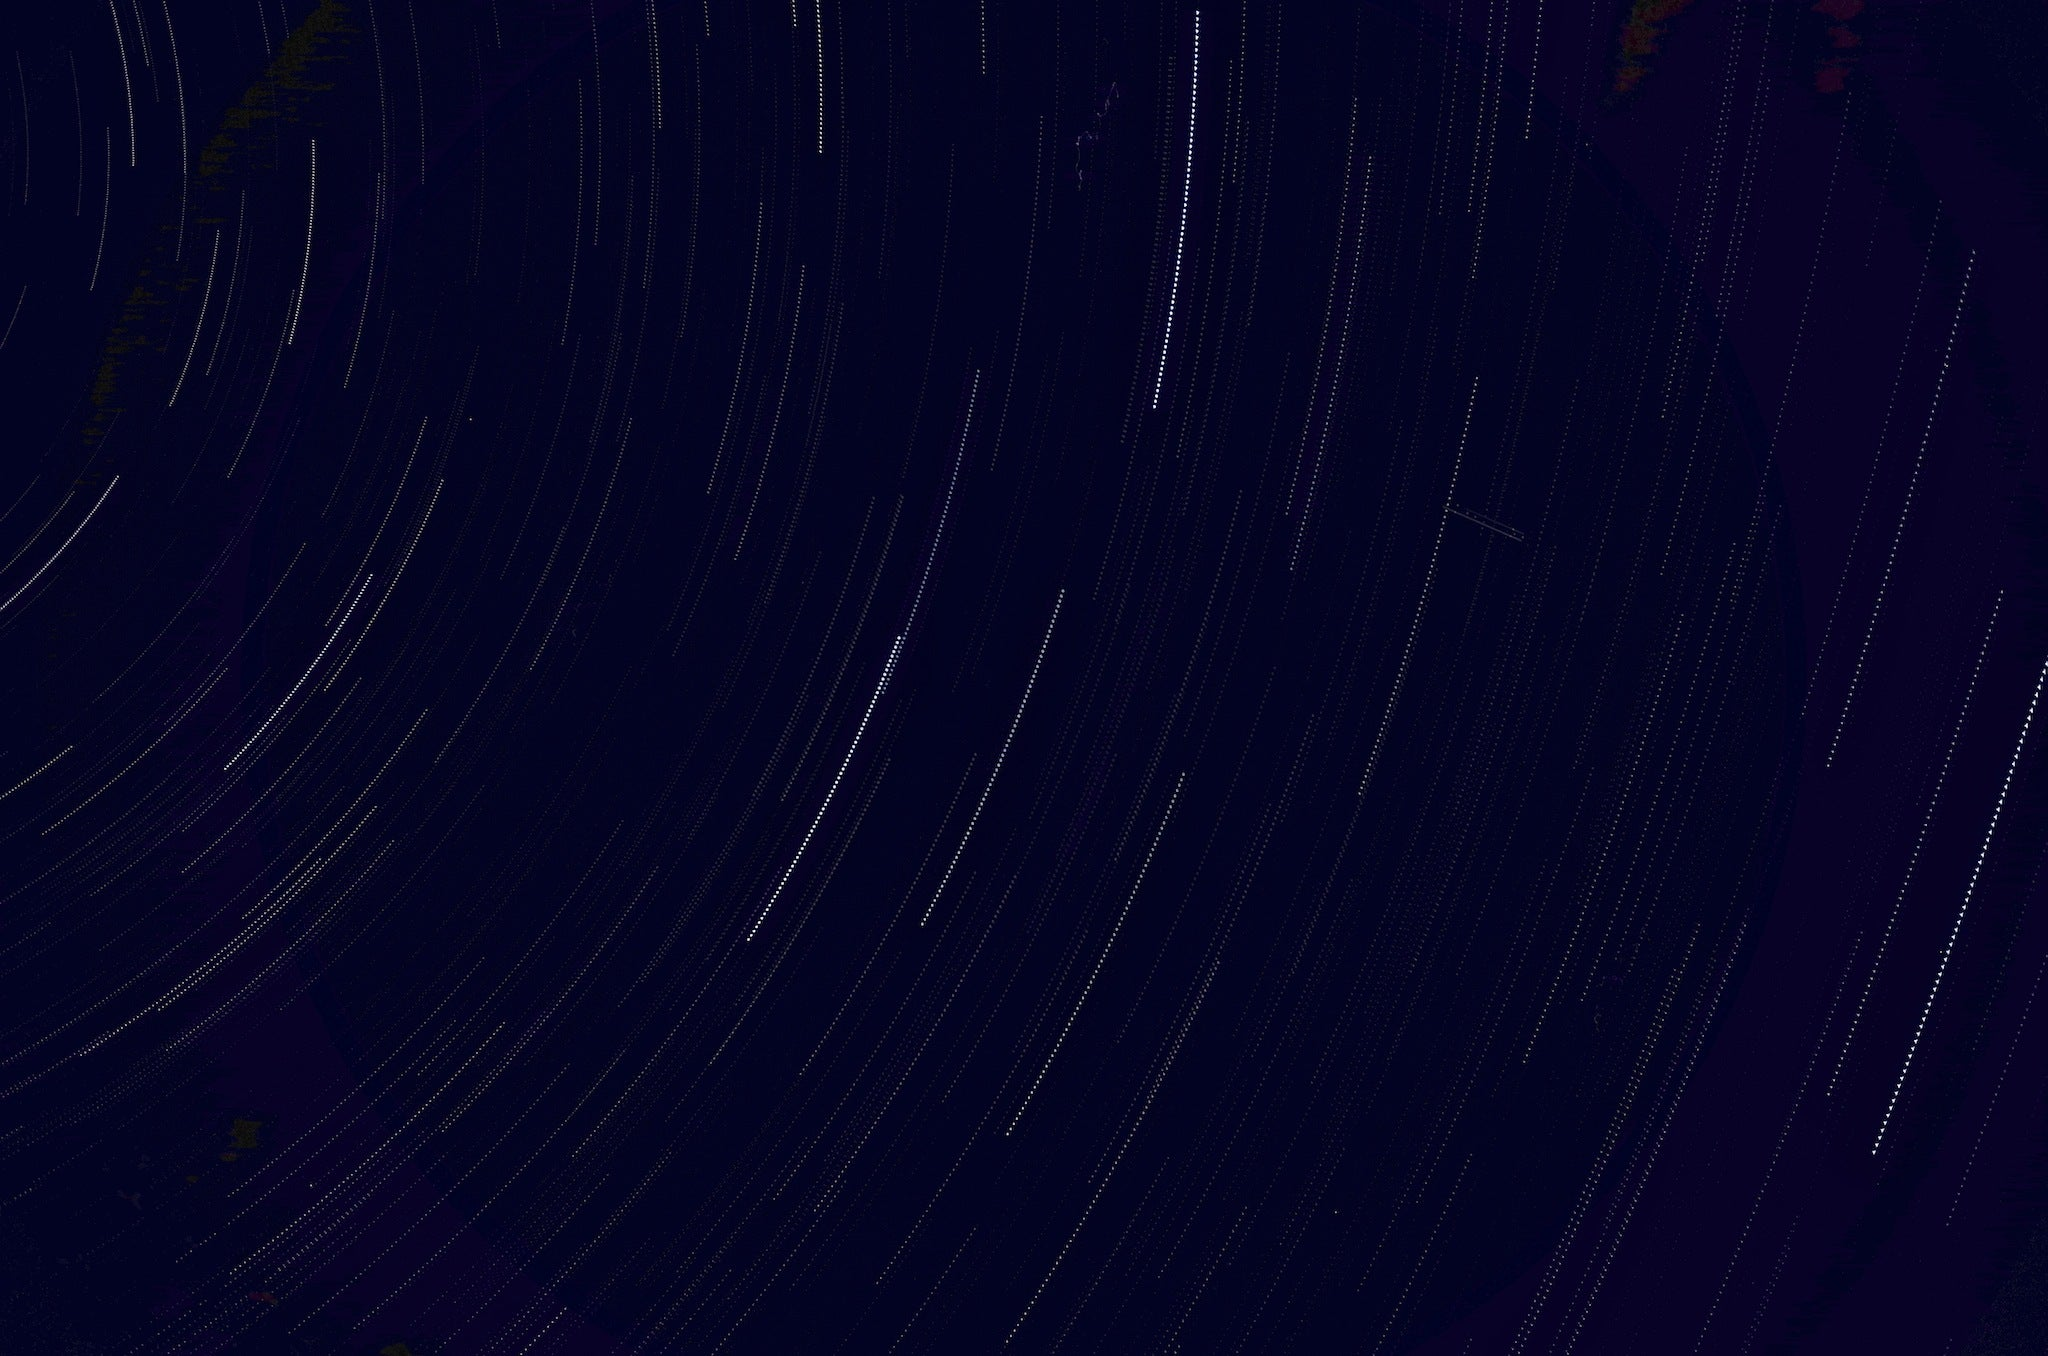 Star trails recorded with the interval composite setting.